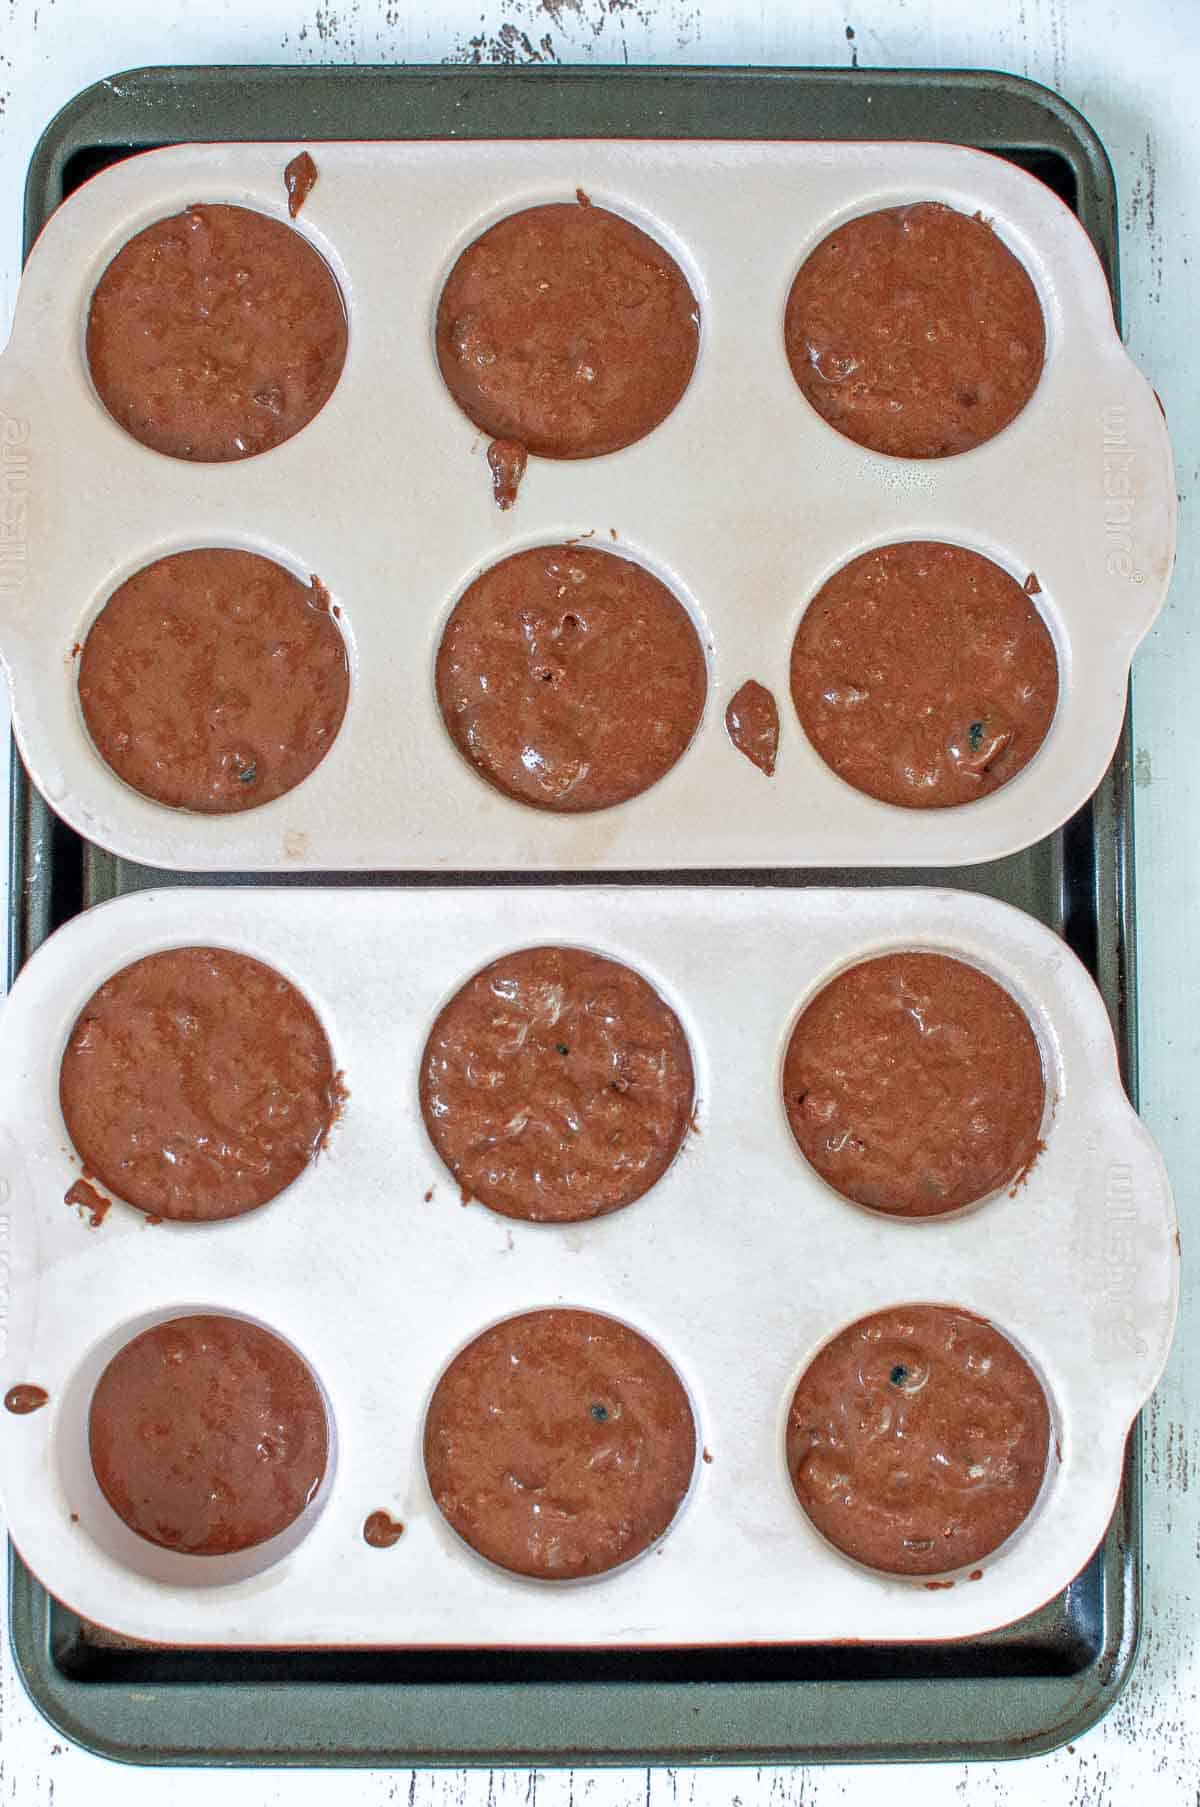 muffins in silicone moulds ready for baking